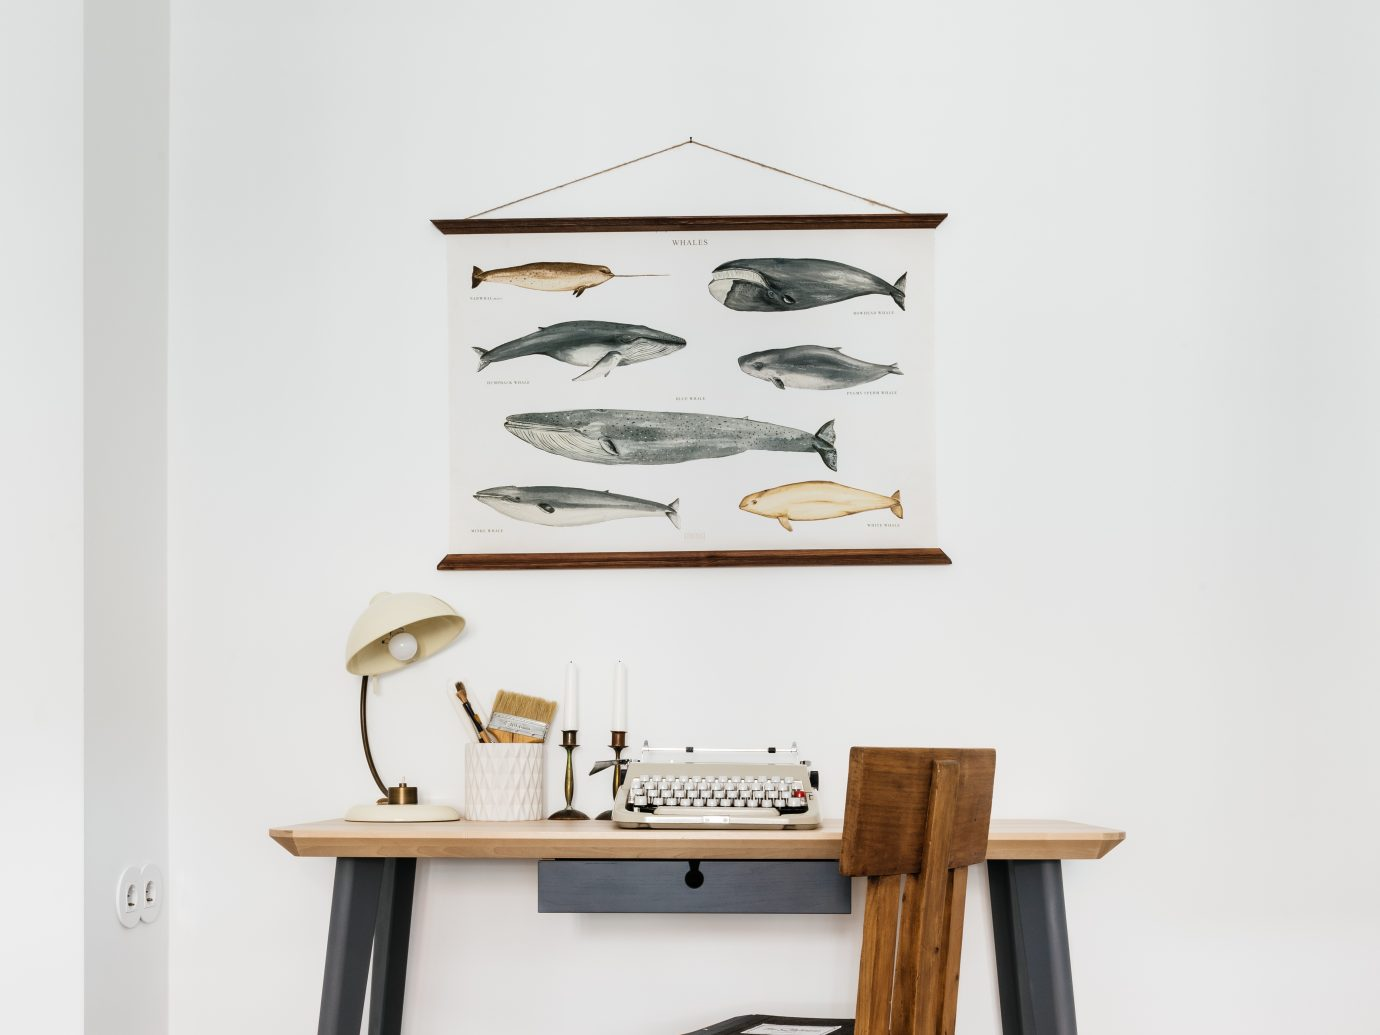 A hip, antique desk area with second hand, stylish furniture and a wall decoration featuring different fish drawings